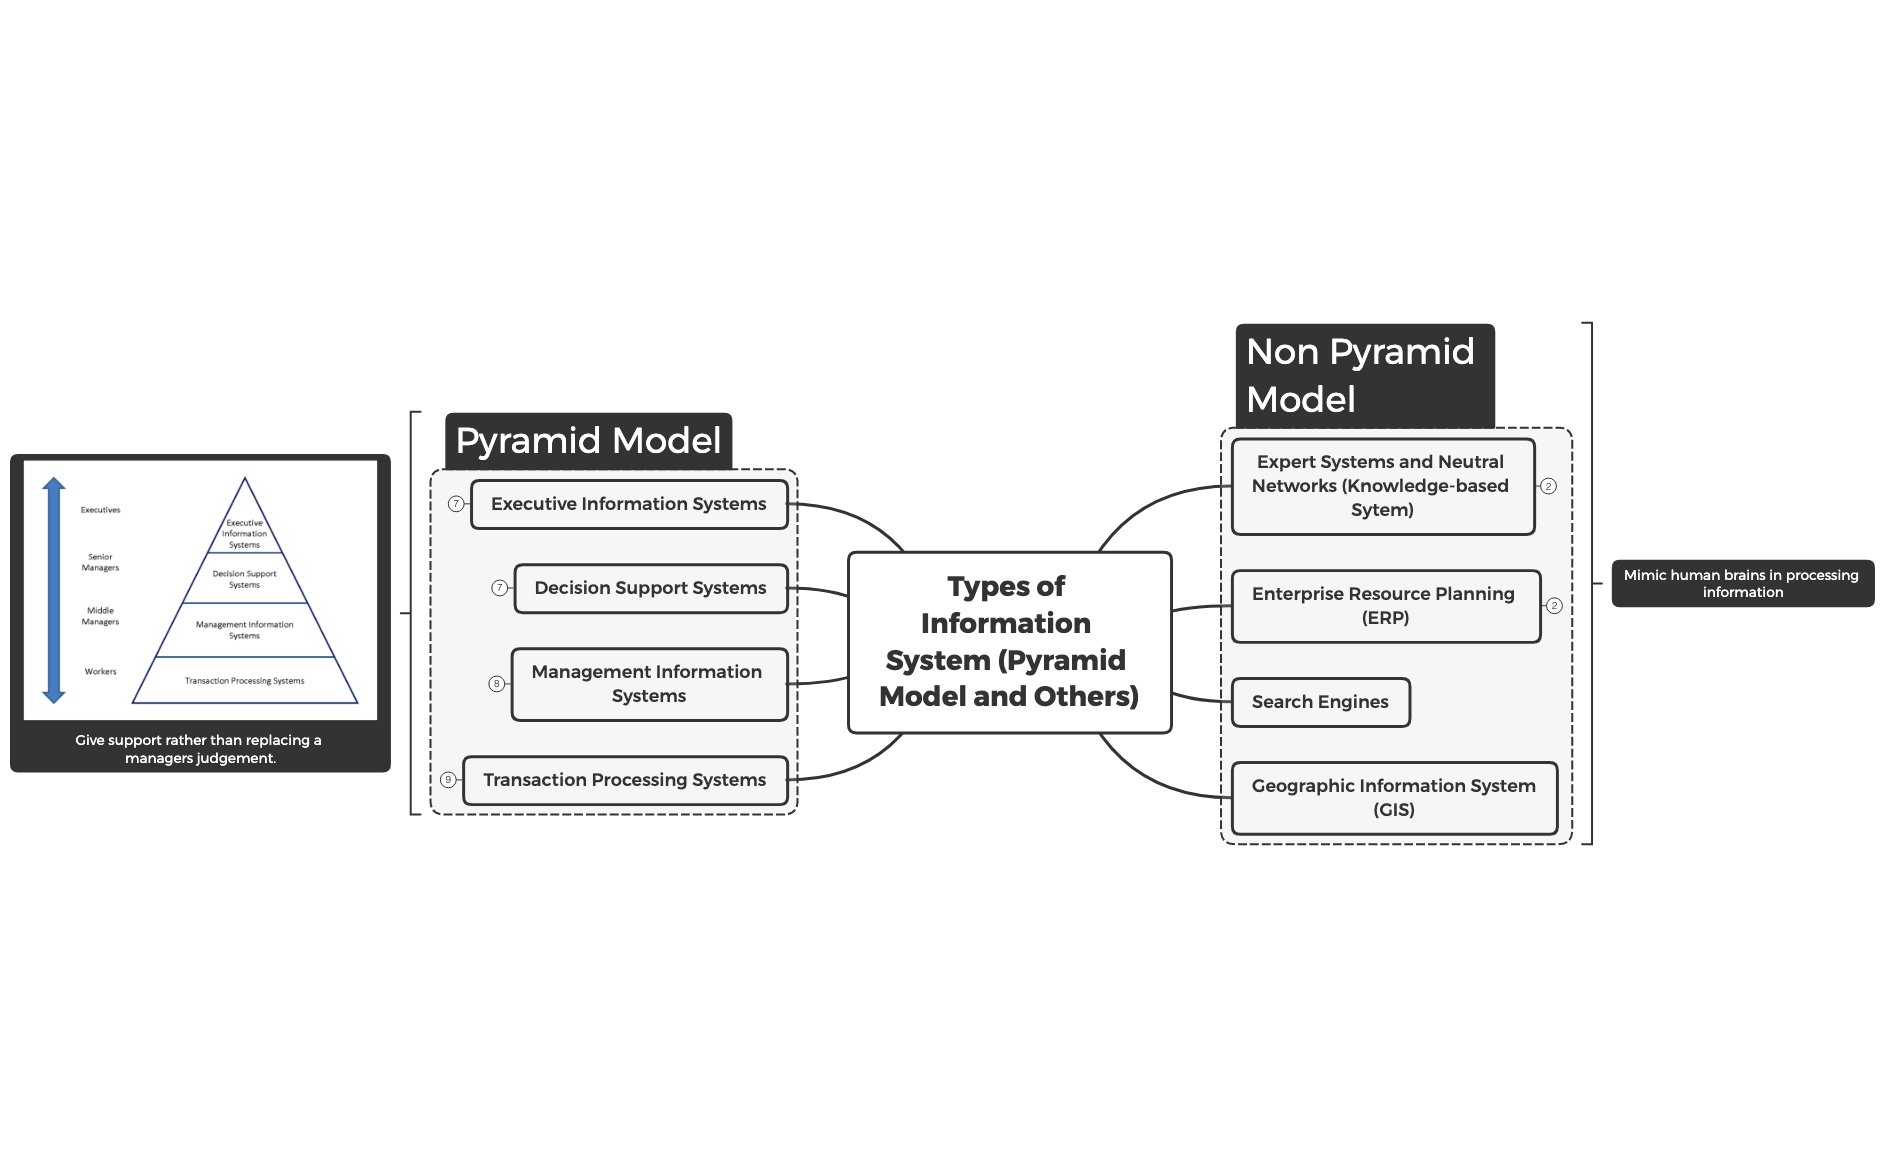 Types of Information System (Pyramid Models and Non-Pyramid Models)